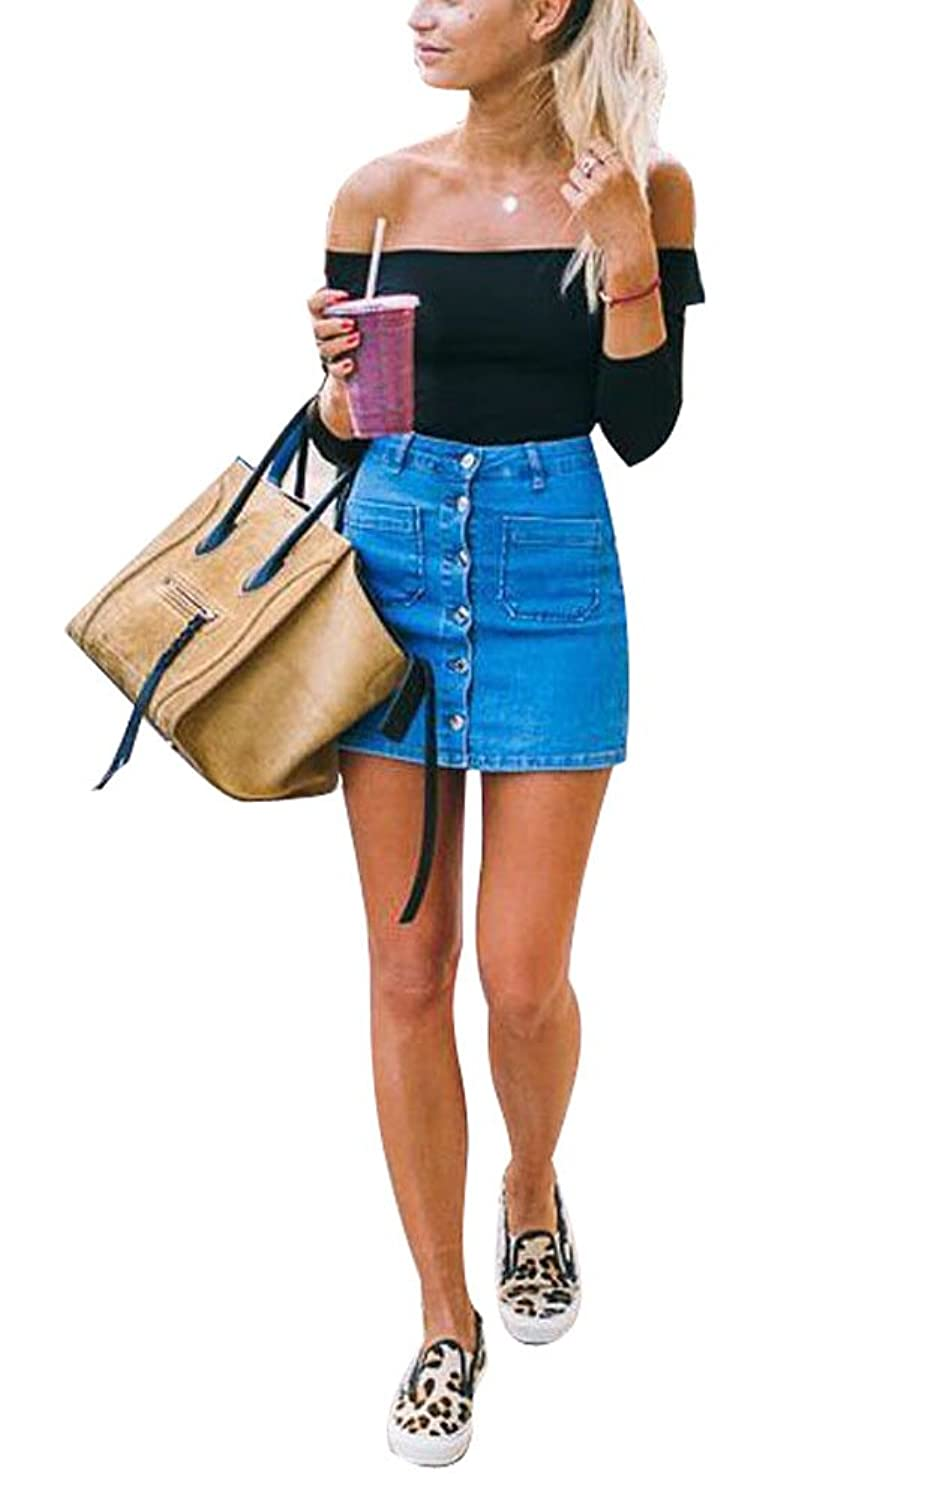 c7ac0a957d3 Top4  USGreatgorgeous Women s Juniors Cute Button Down Denim Mini Skirt  Short Pencil Jean Skirt